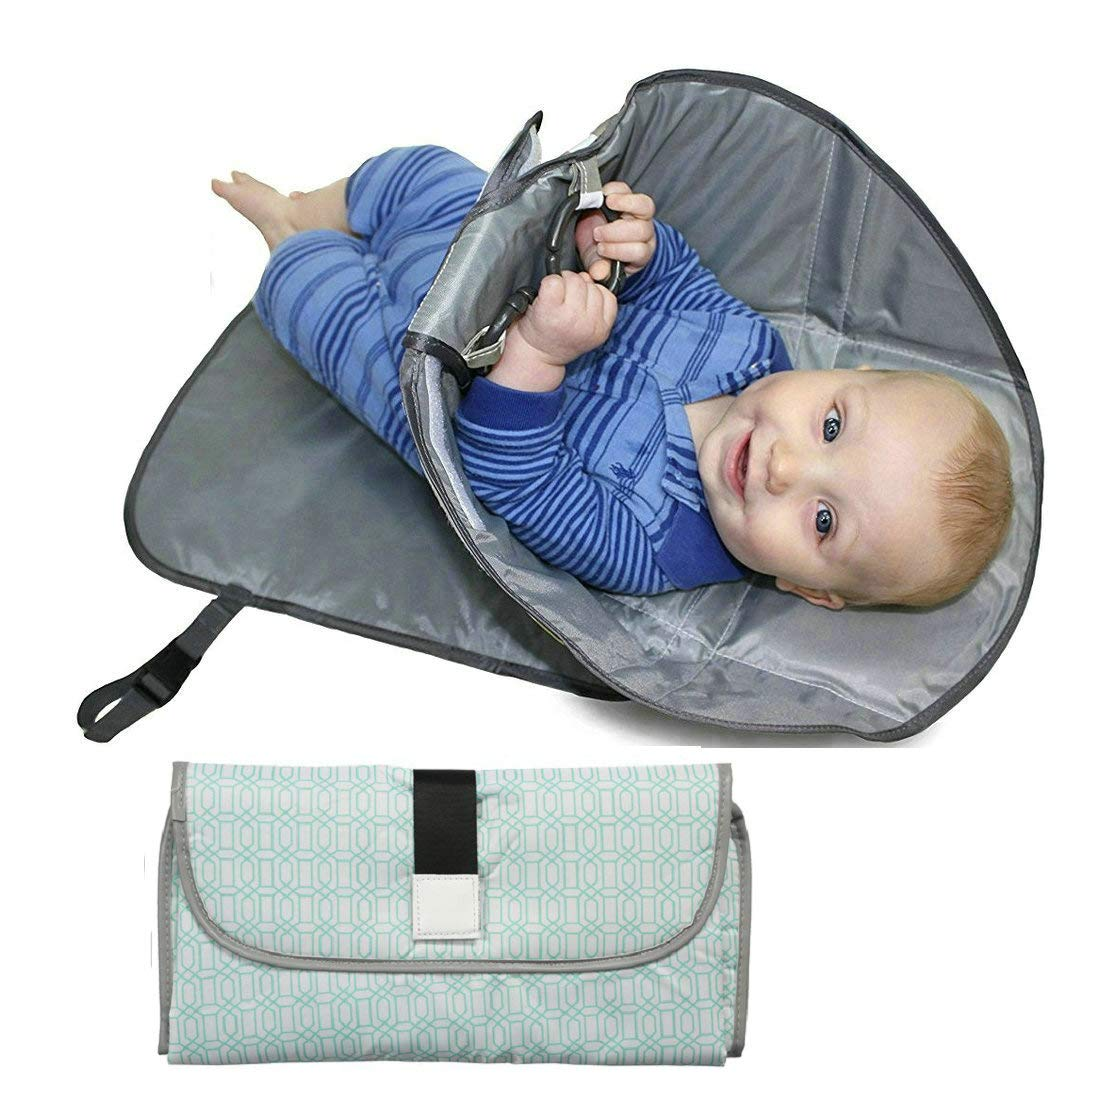 Atongham Portable Waterproof Baby Diaper Changing Mat Portable Covers with Storage Pockets Travel Urine Washable Baby Care Product Color C